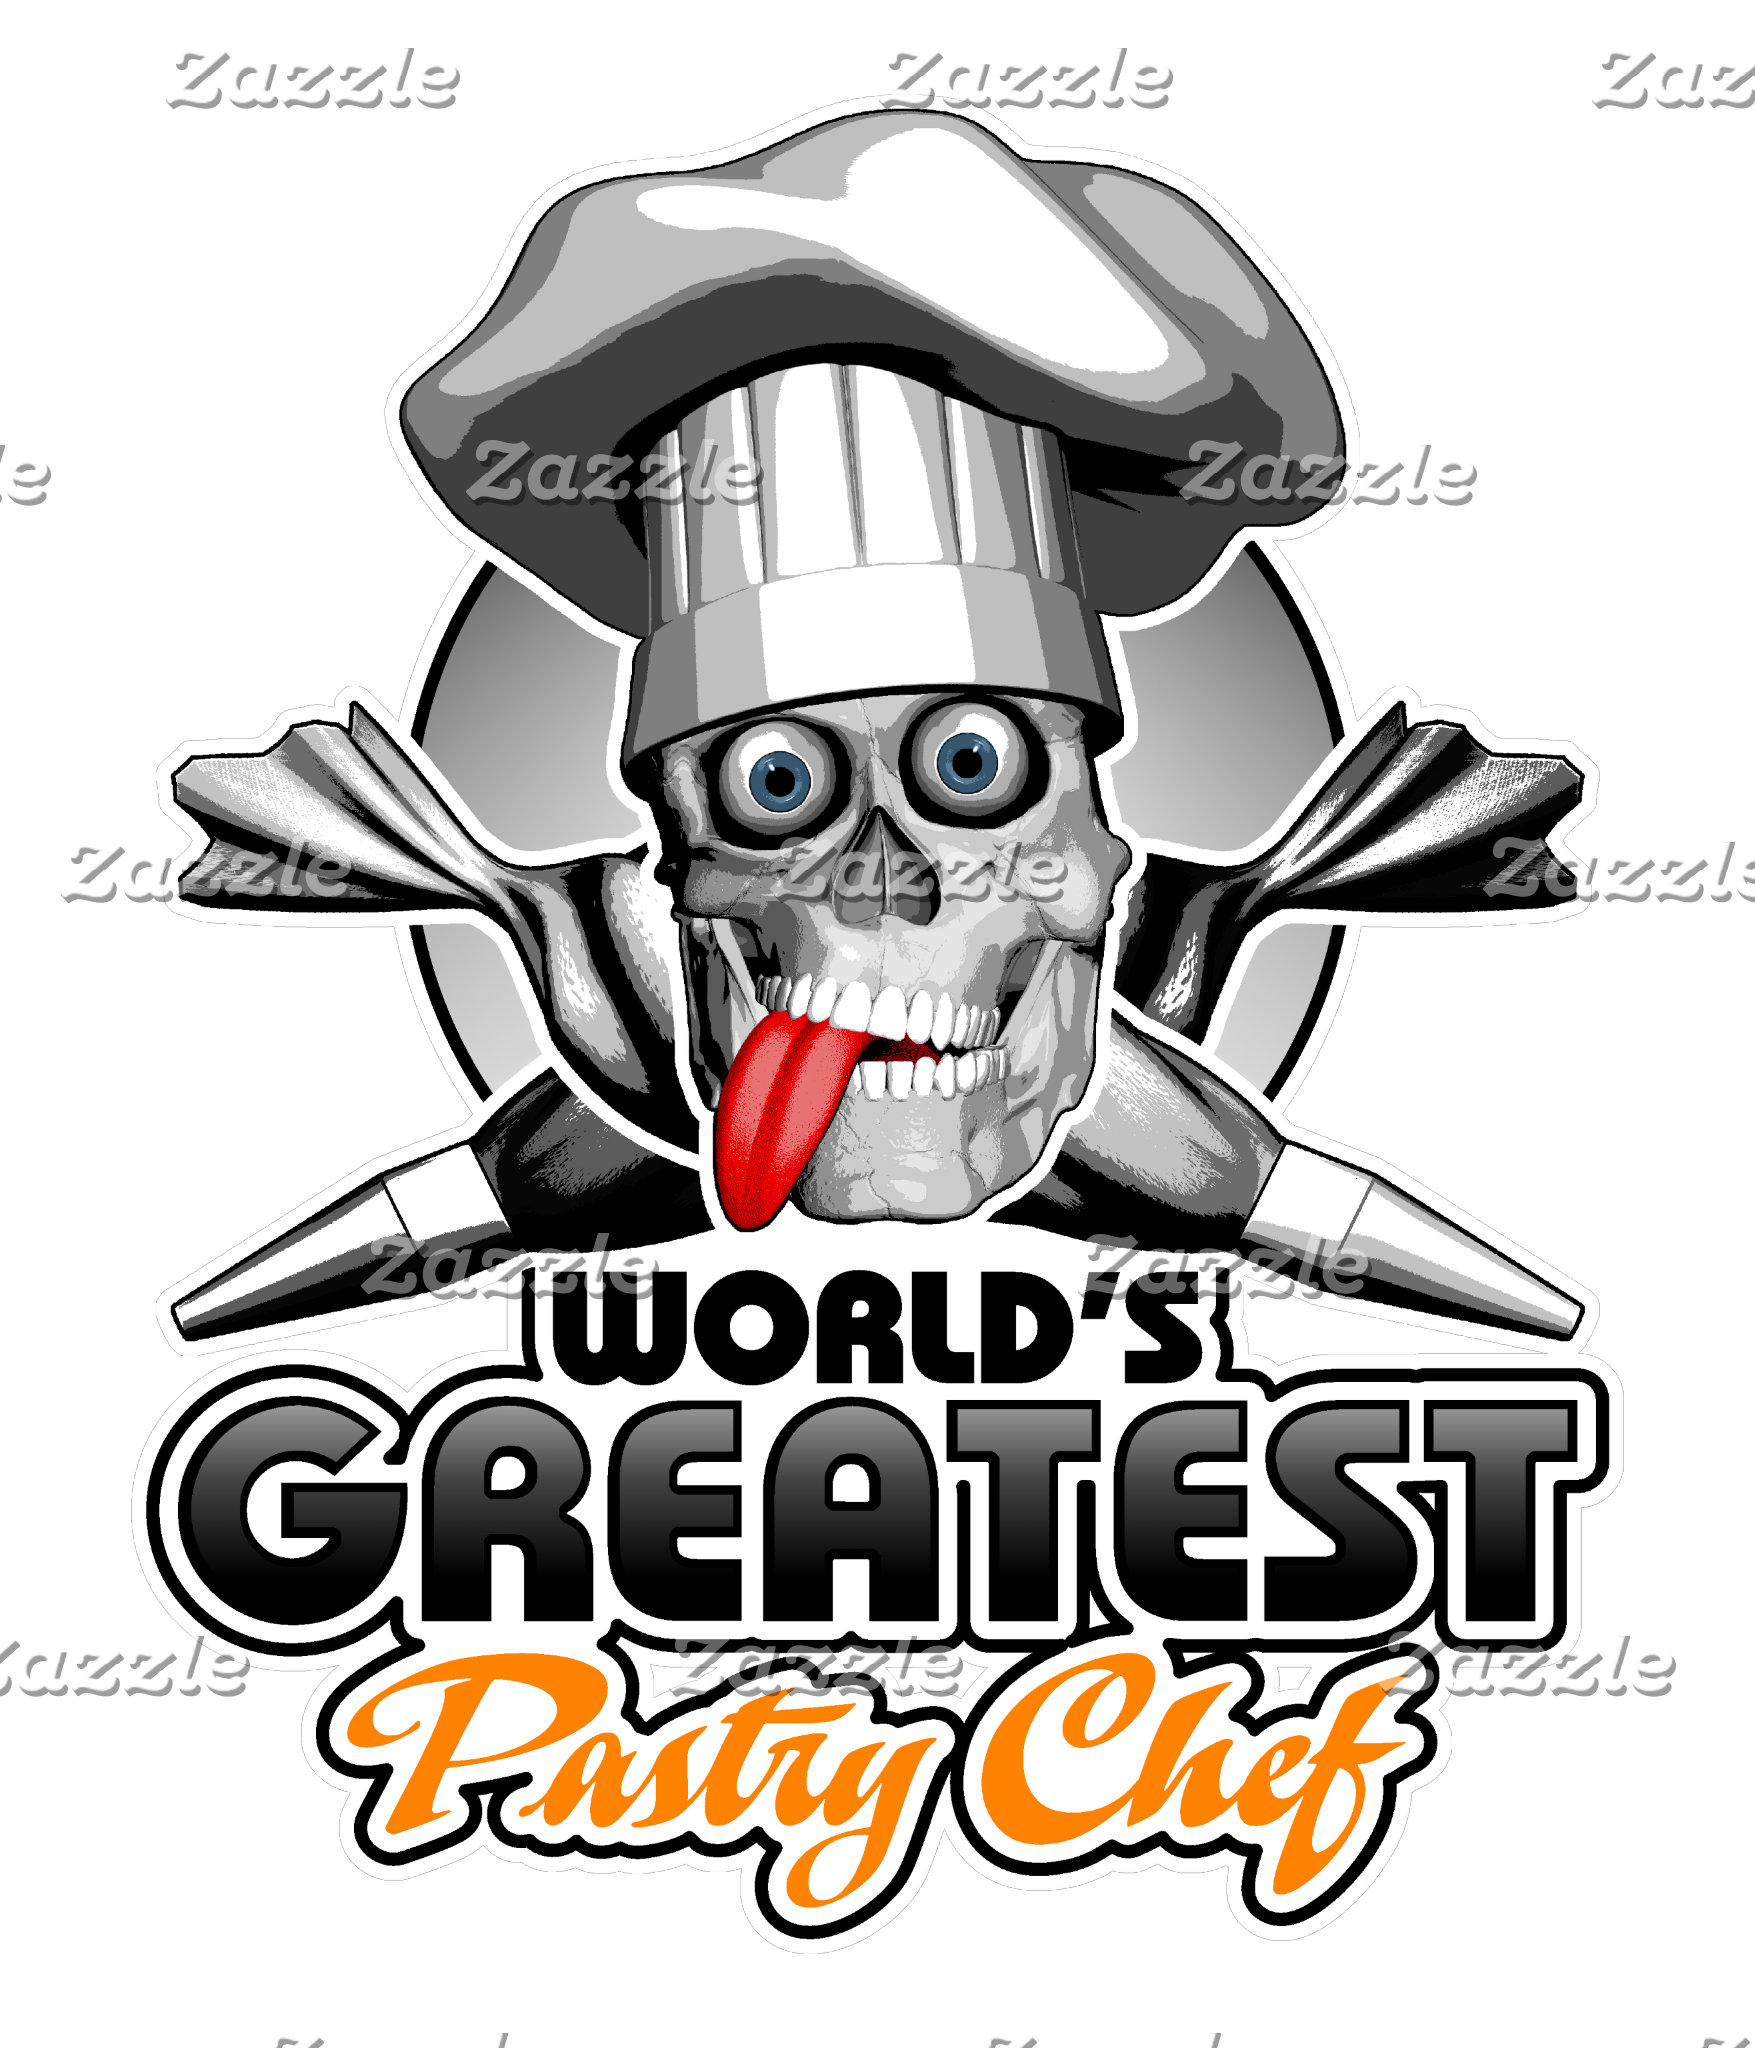 World's Greatest Pastry Chef v3